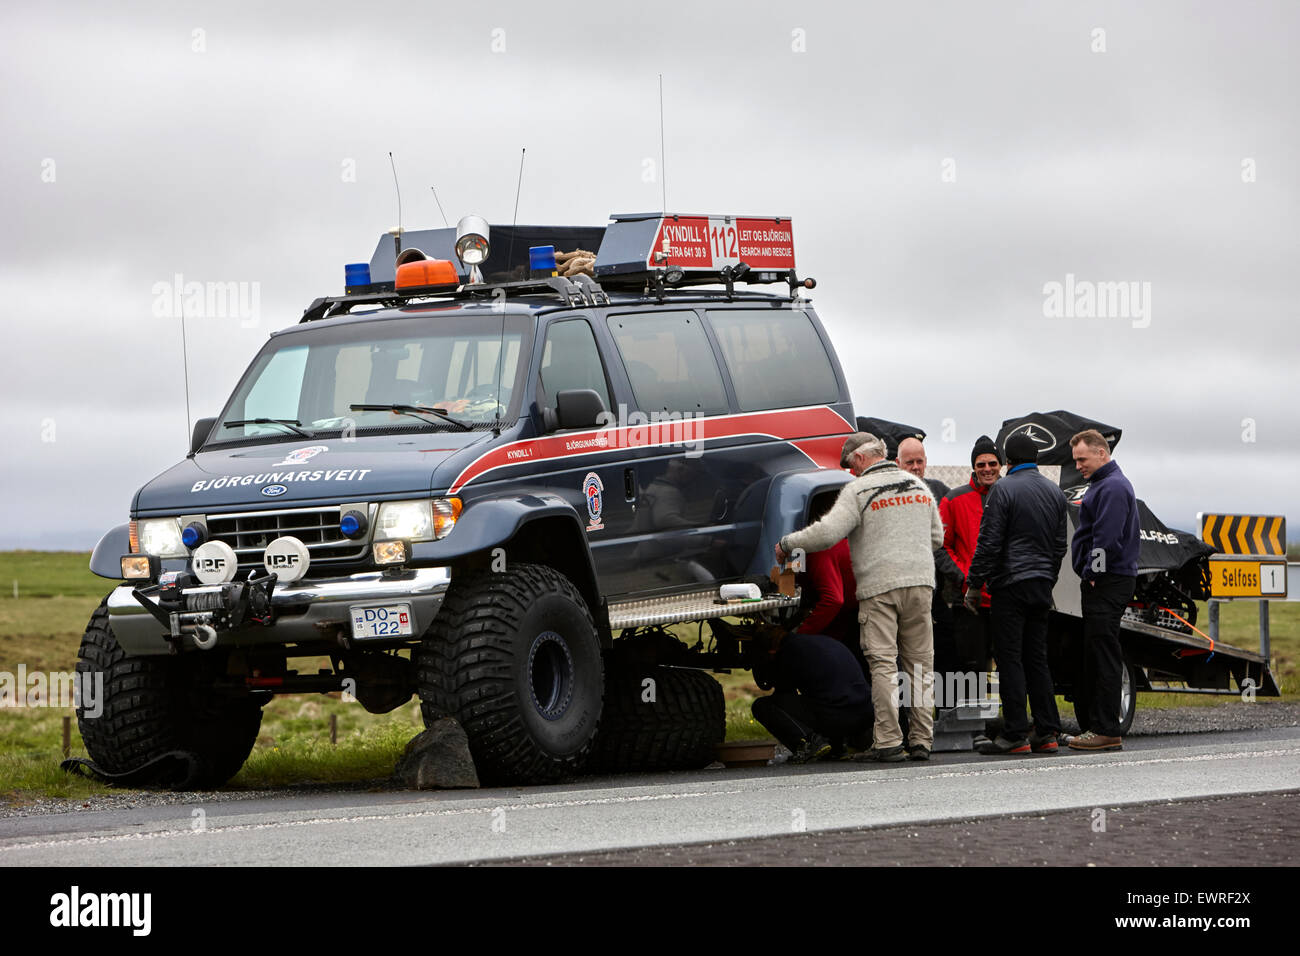 broken down Björgunarsveitin search and rescue truck in Iceland - Stock Image